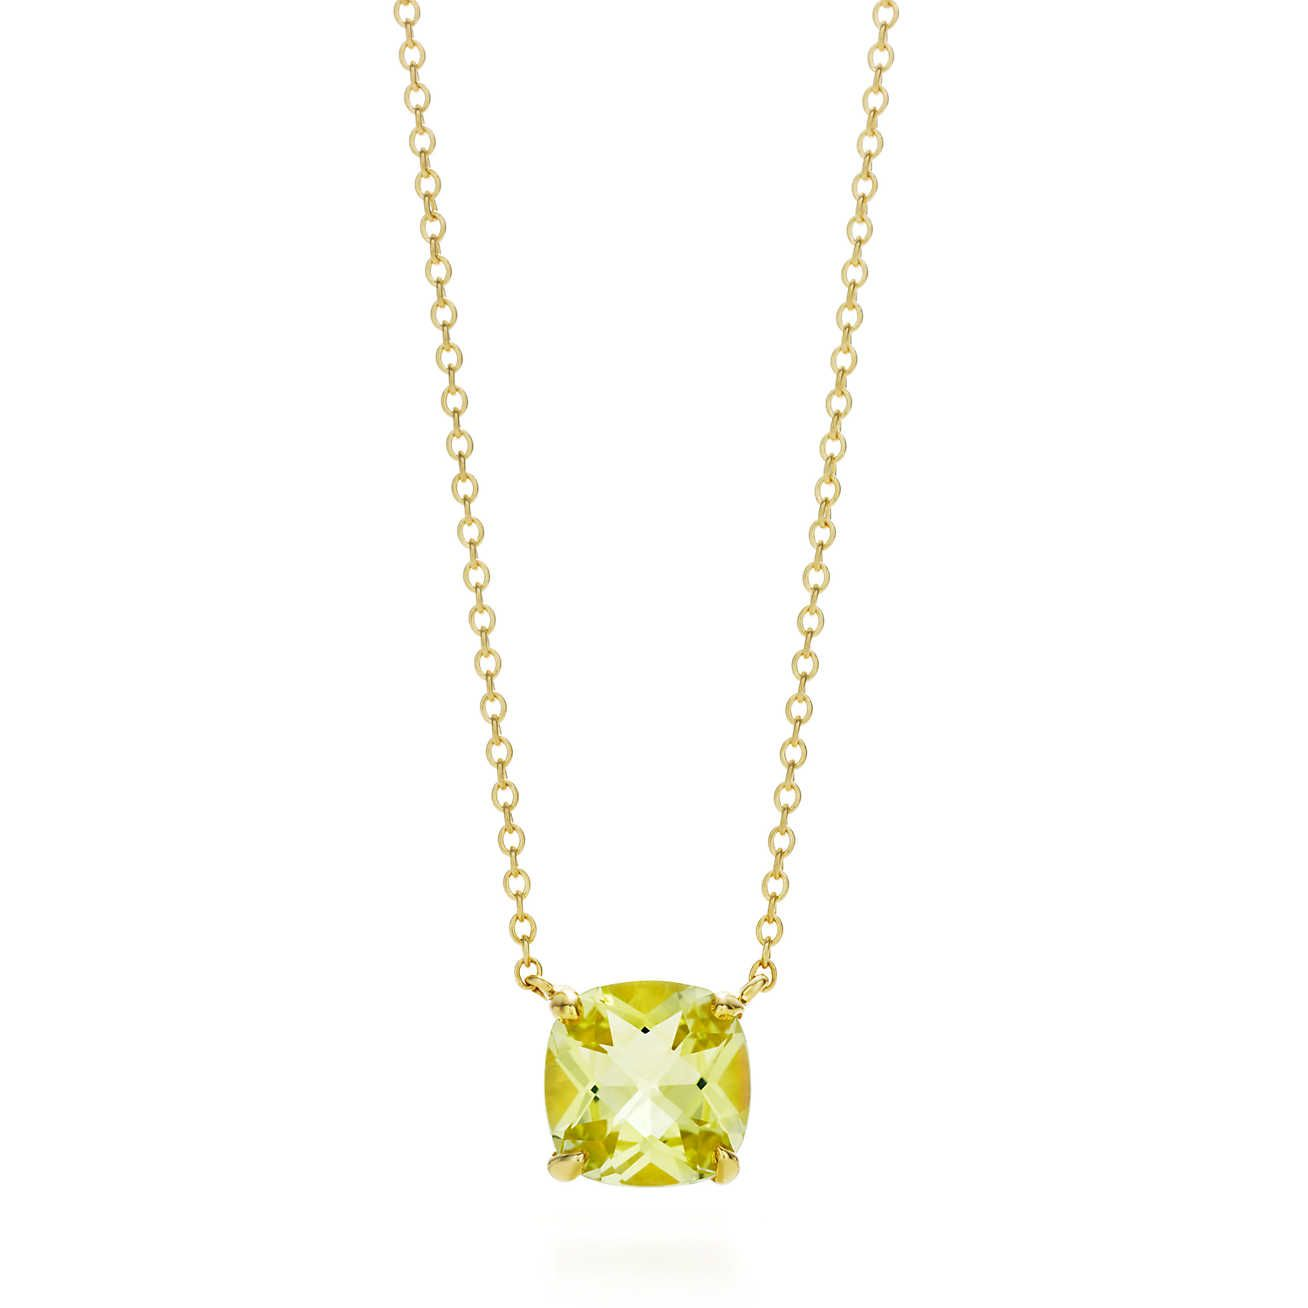 Tiffany Sparklers Yellow Citrine Pendant In 2019 Citrine